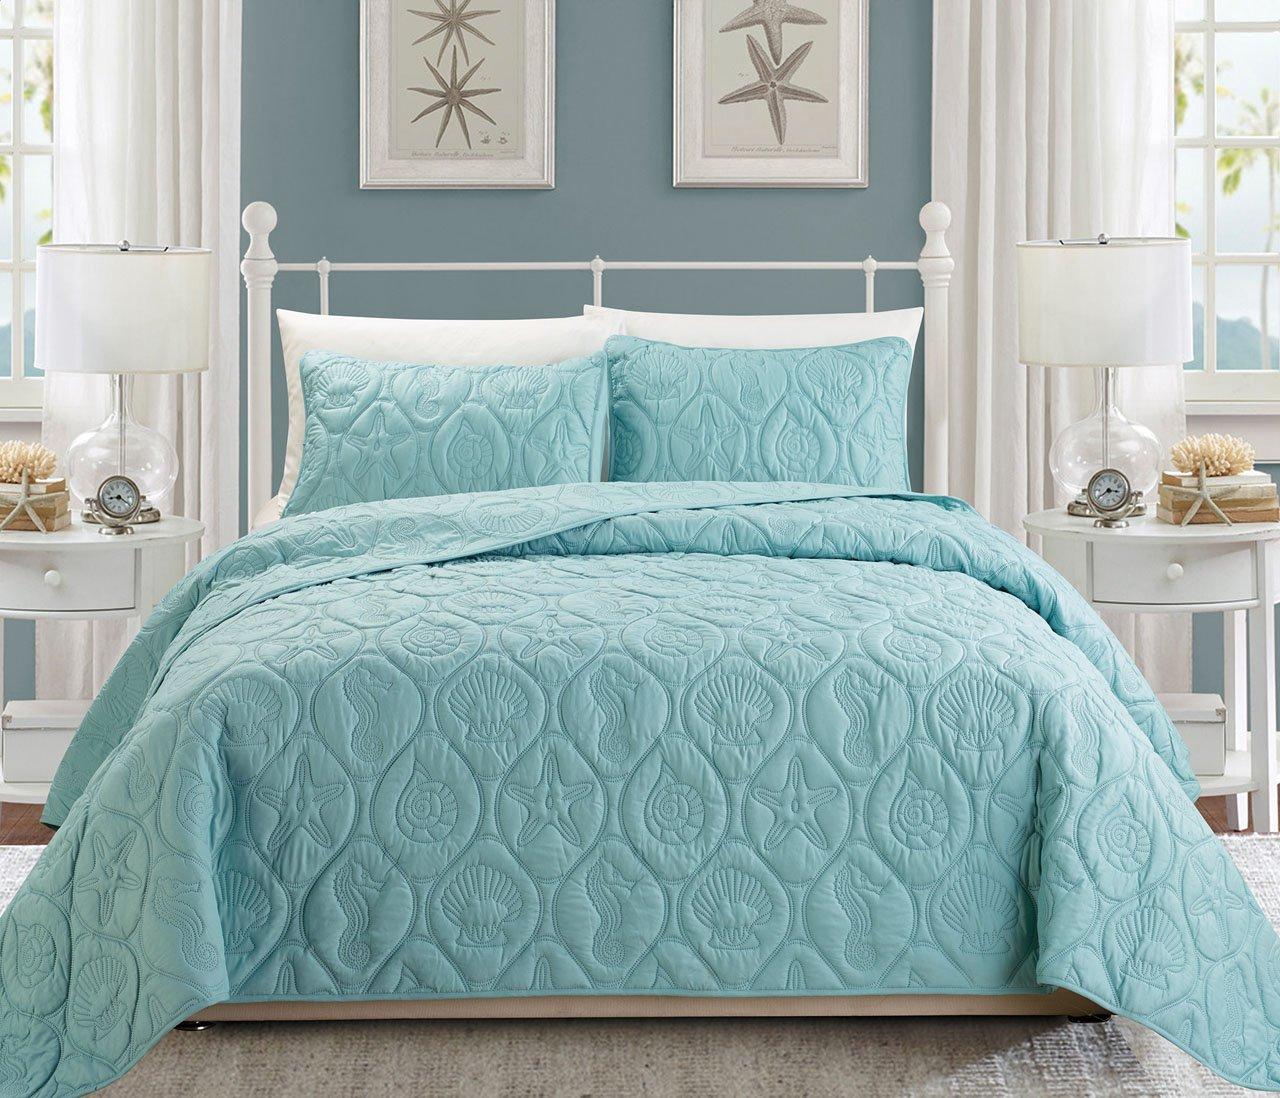 Seashell Spa Blue Reversible Bedspread/Quilt Set King